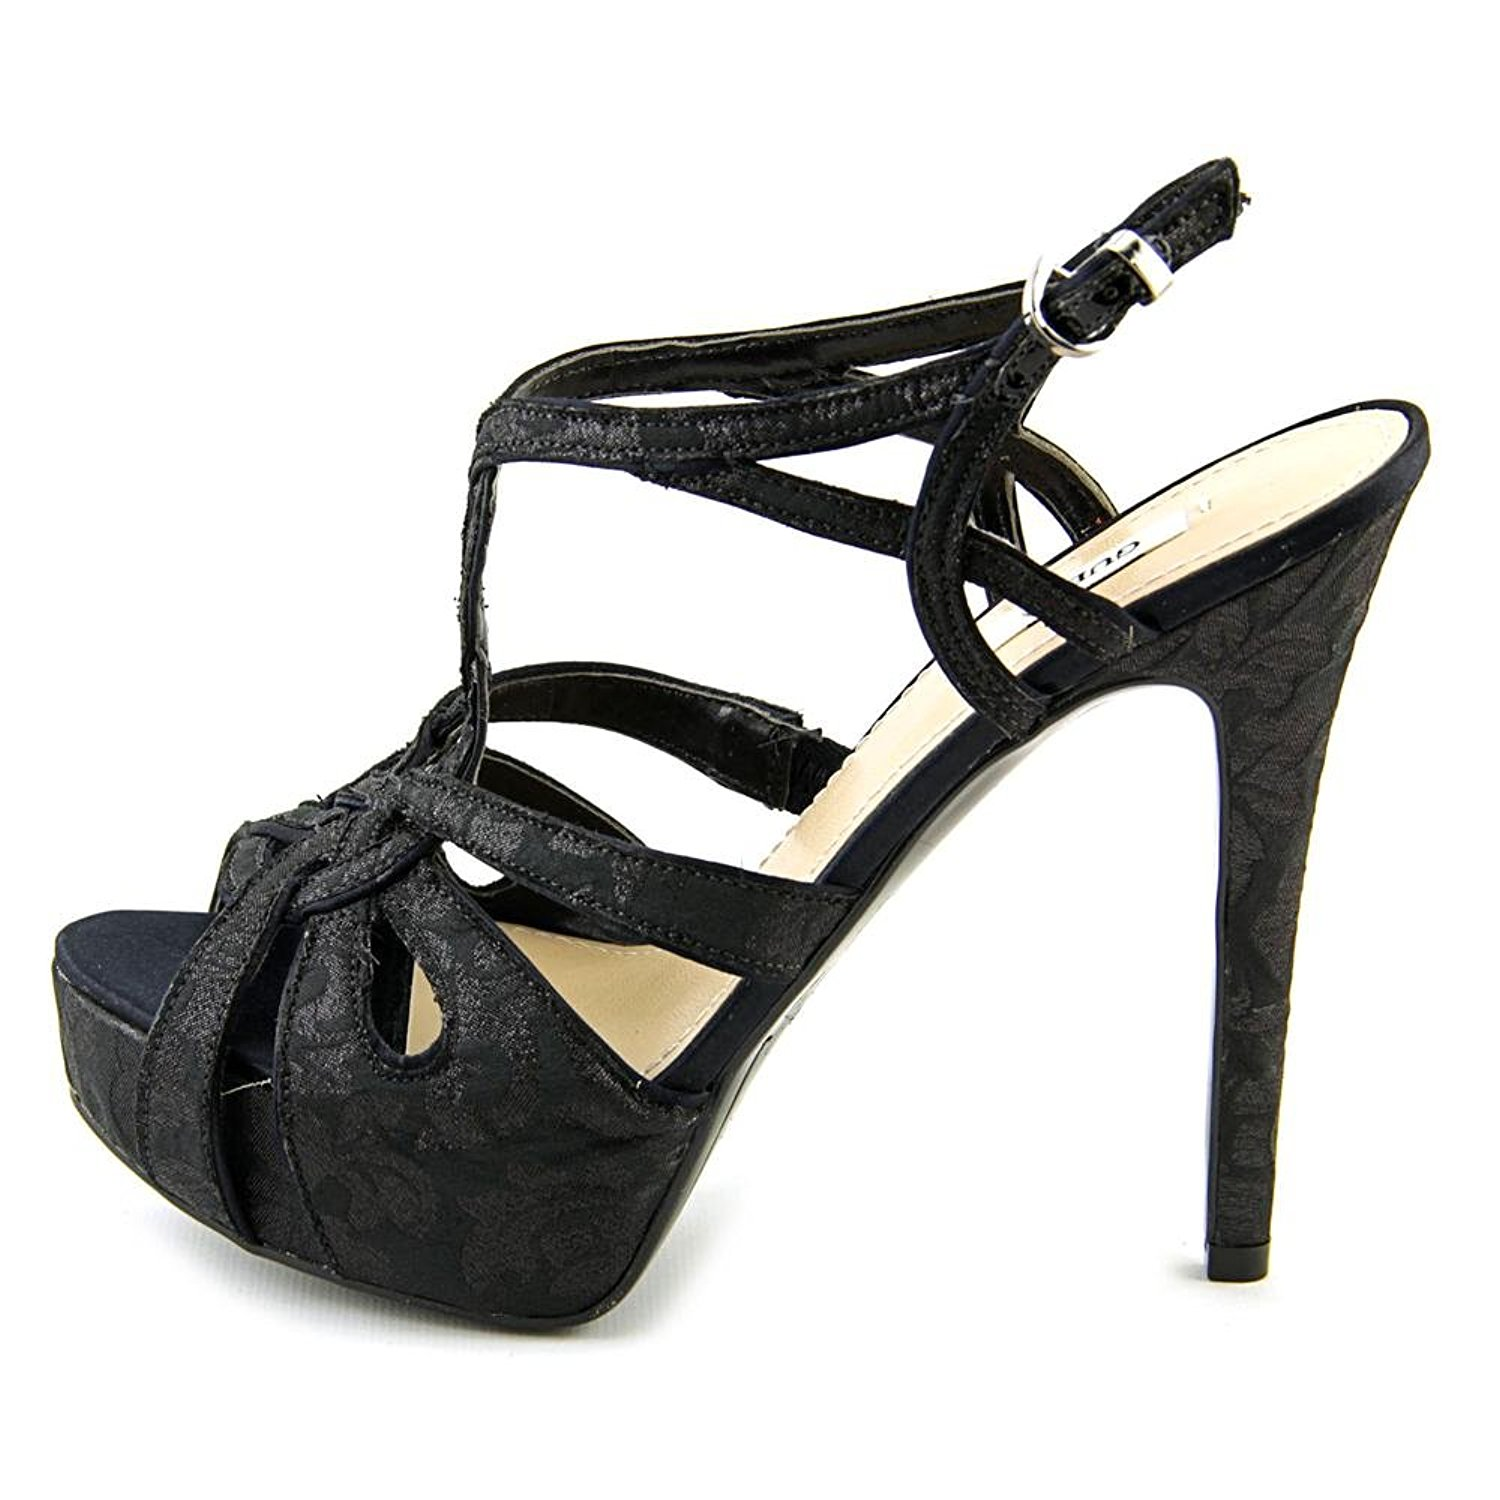 GUESS Womens KAESY2 Open Toe SlingBack Platform Pumps Black Size 9.0 W7ta